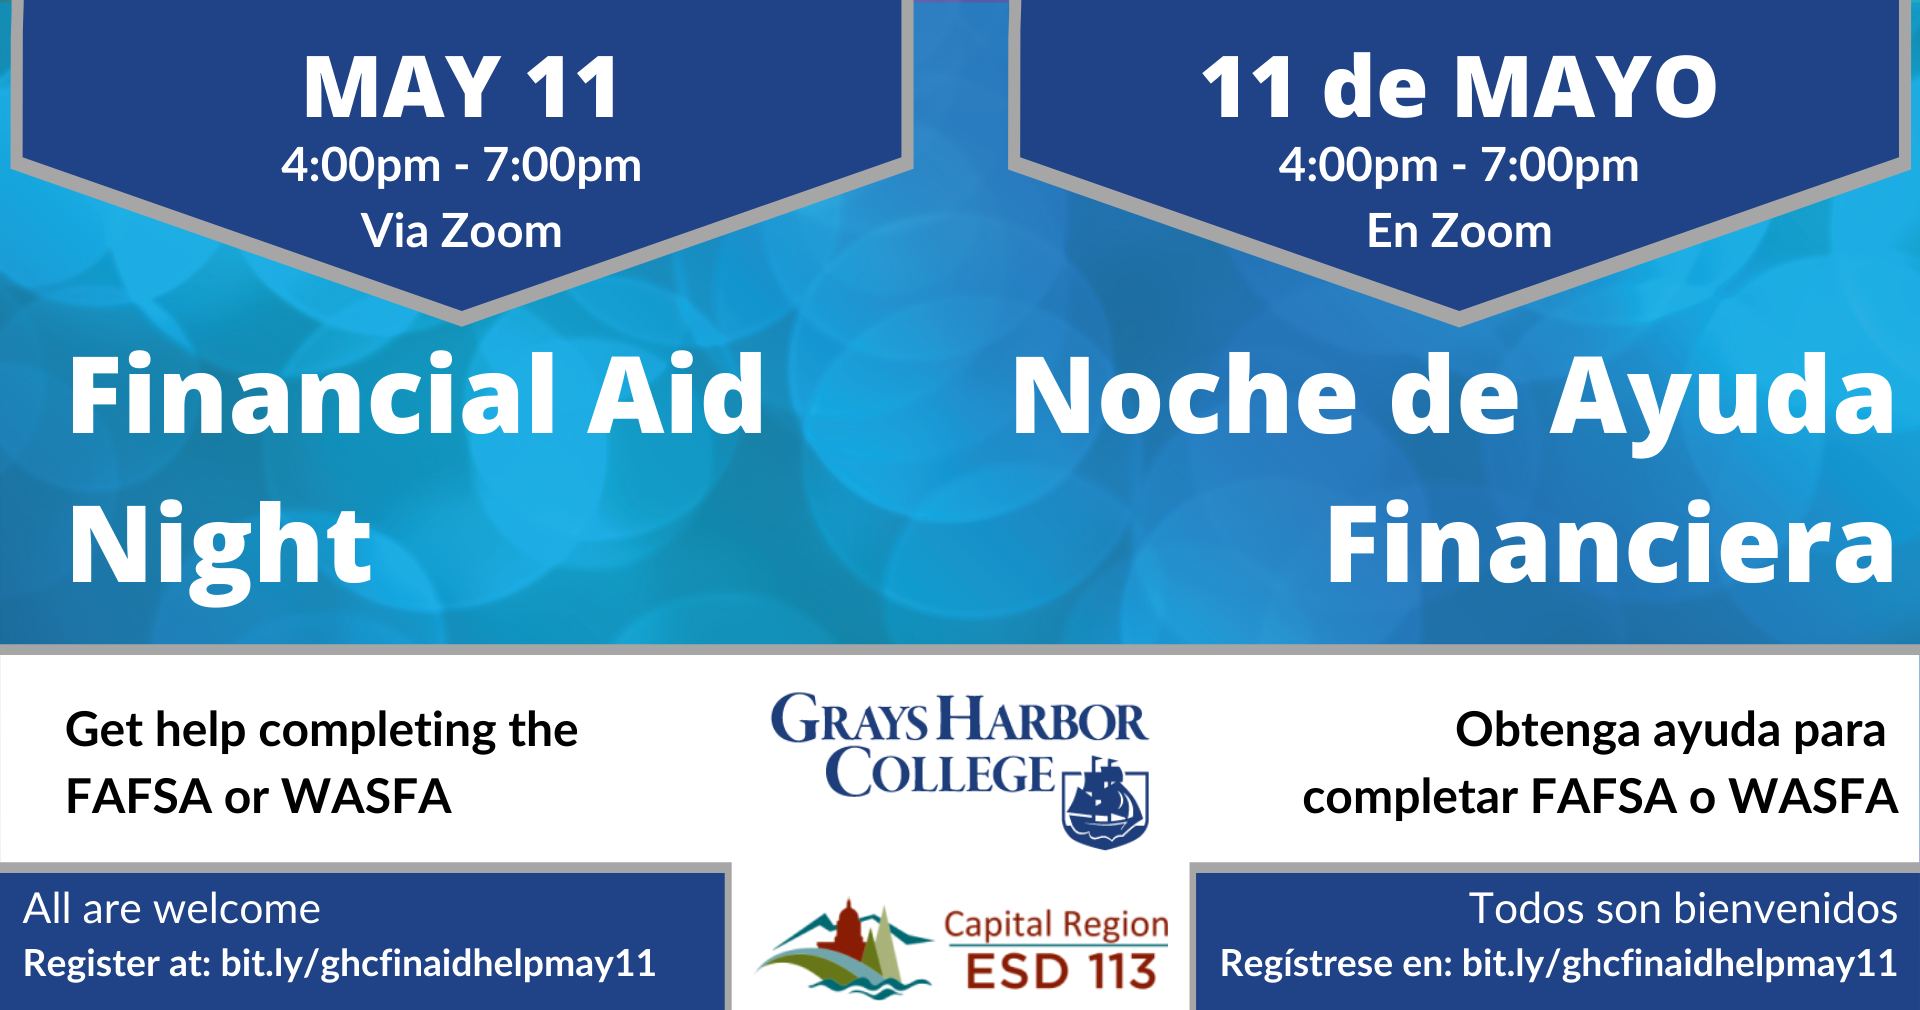 May 11 4:00pm - 7:00pm via Zoom. Get help completing the FAFSA or WASFA. All are welcome